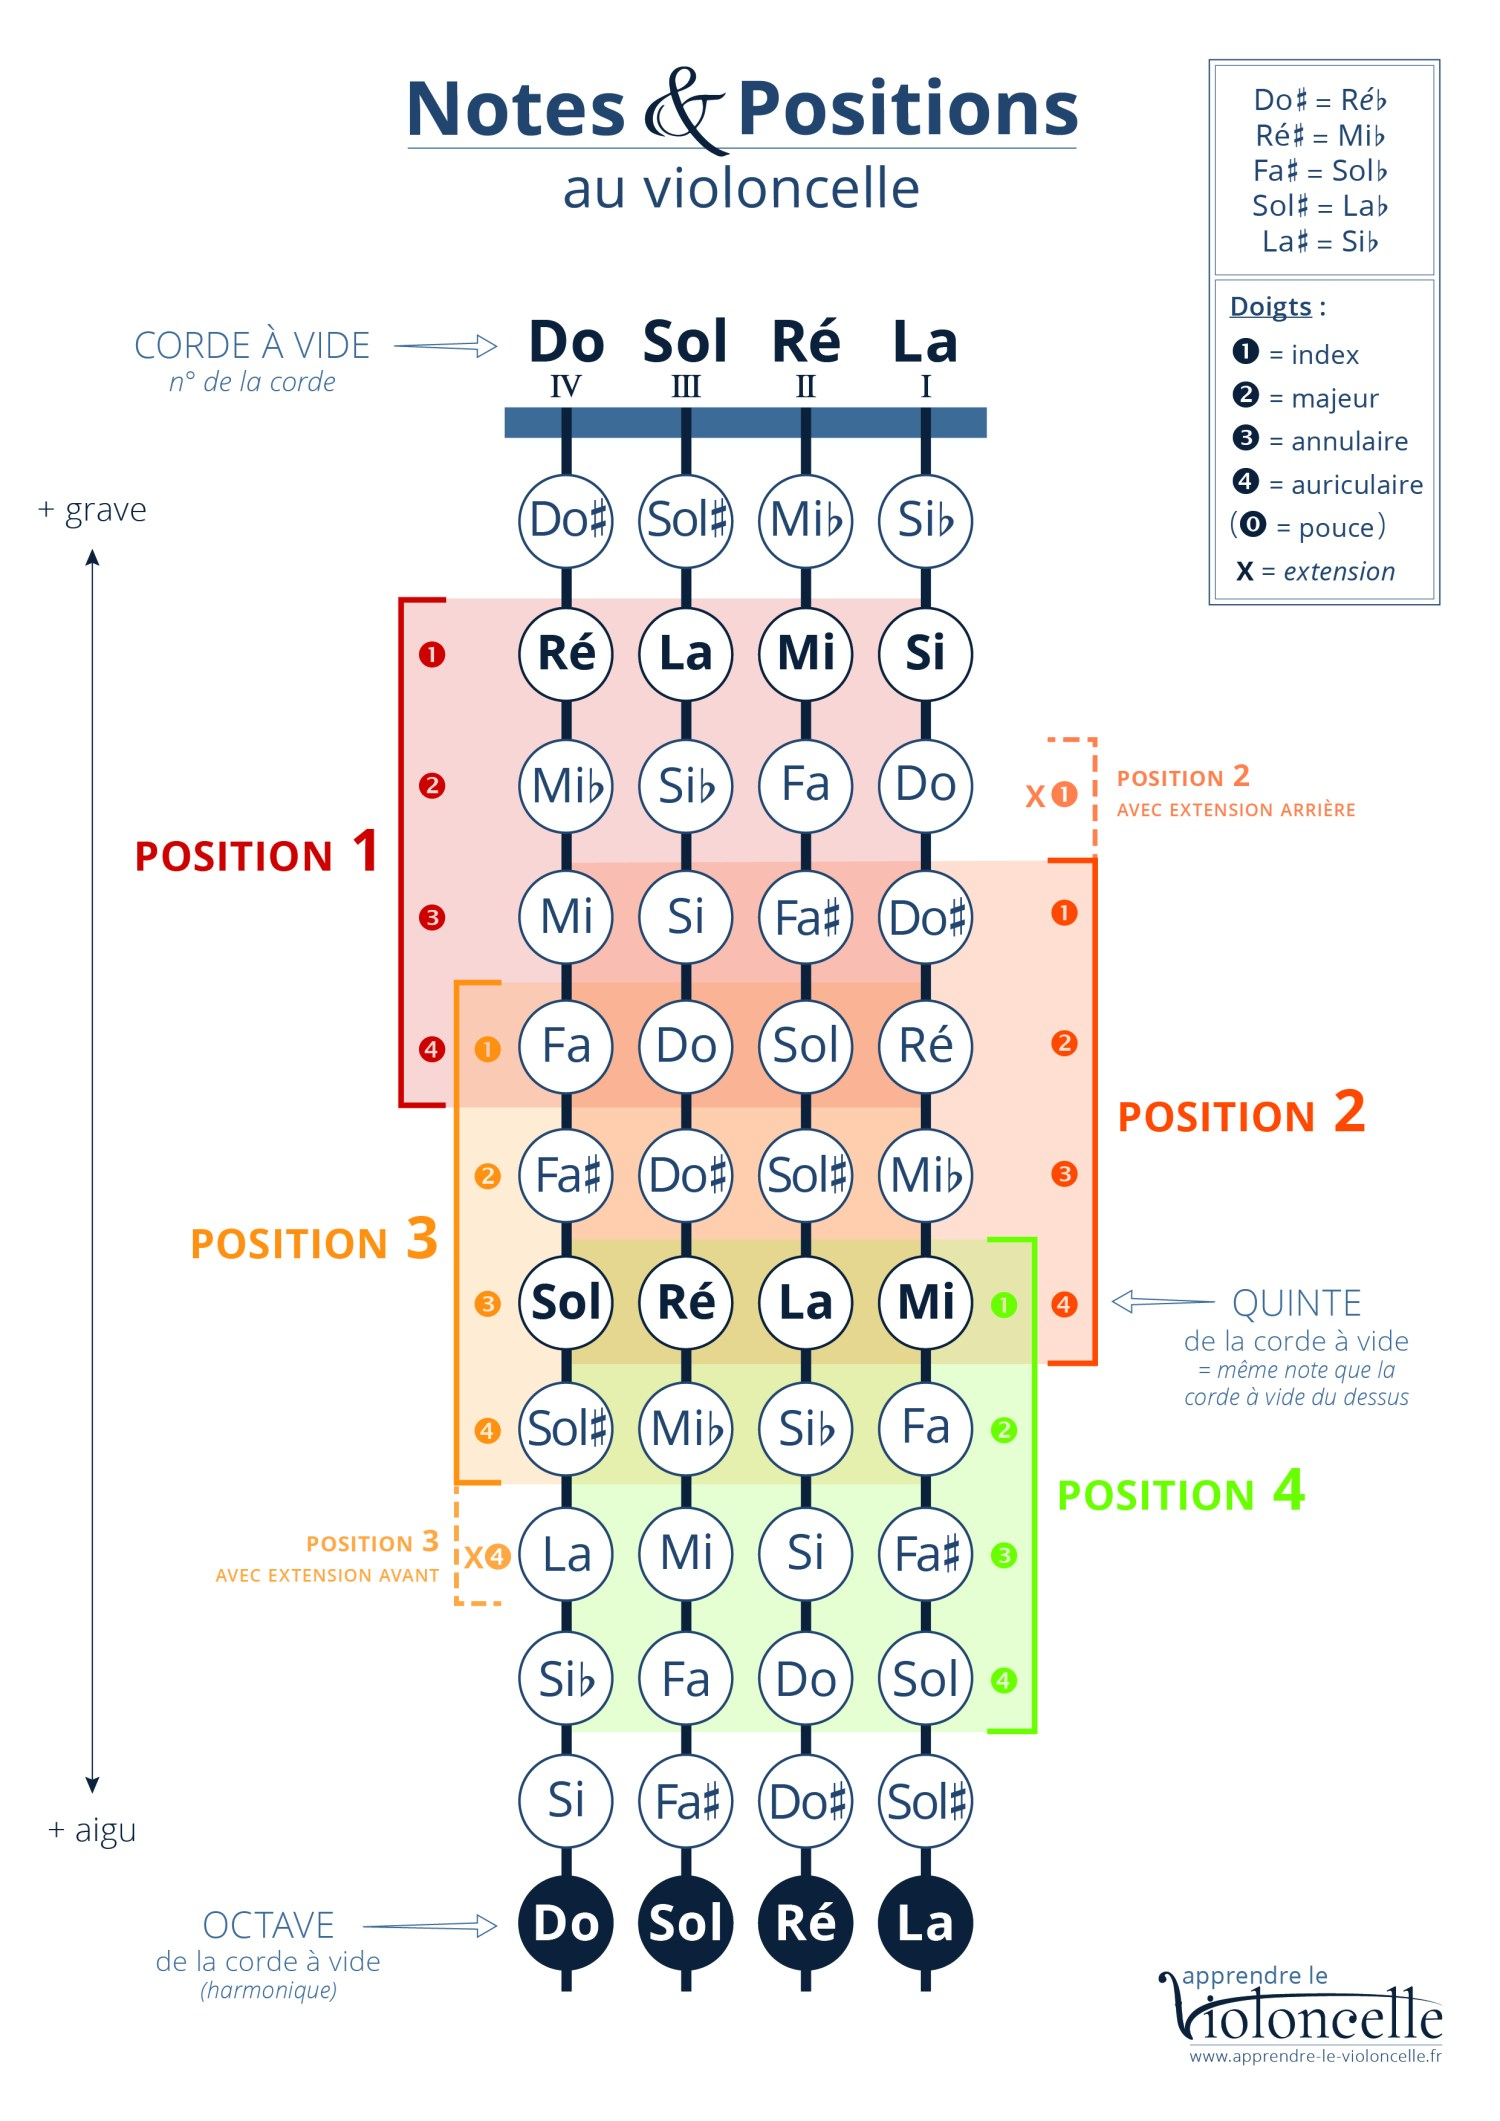 Apprendre-le-violoncelle - Notes & Positions